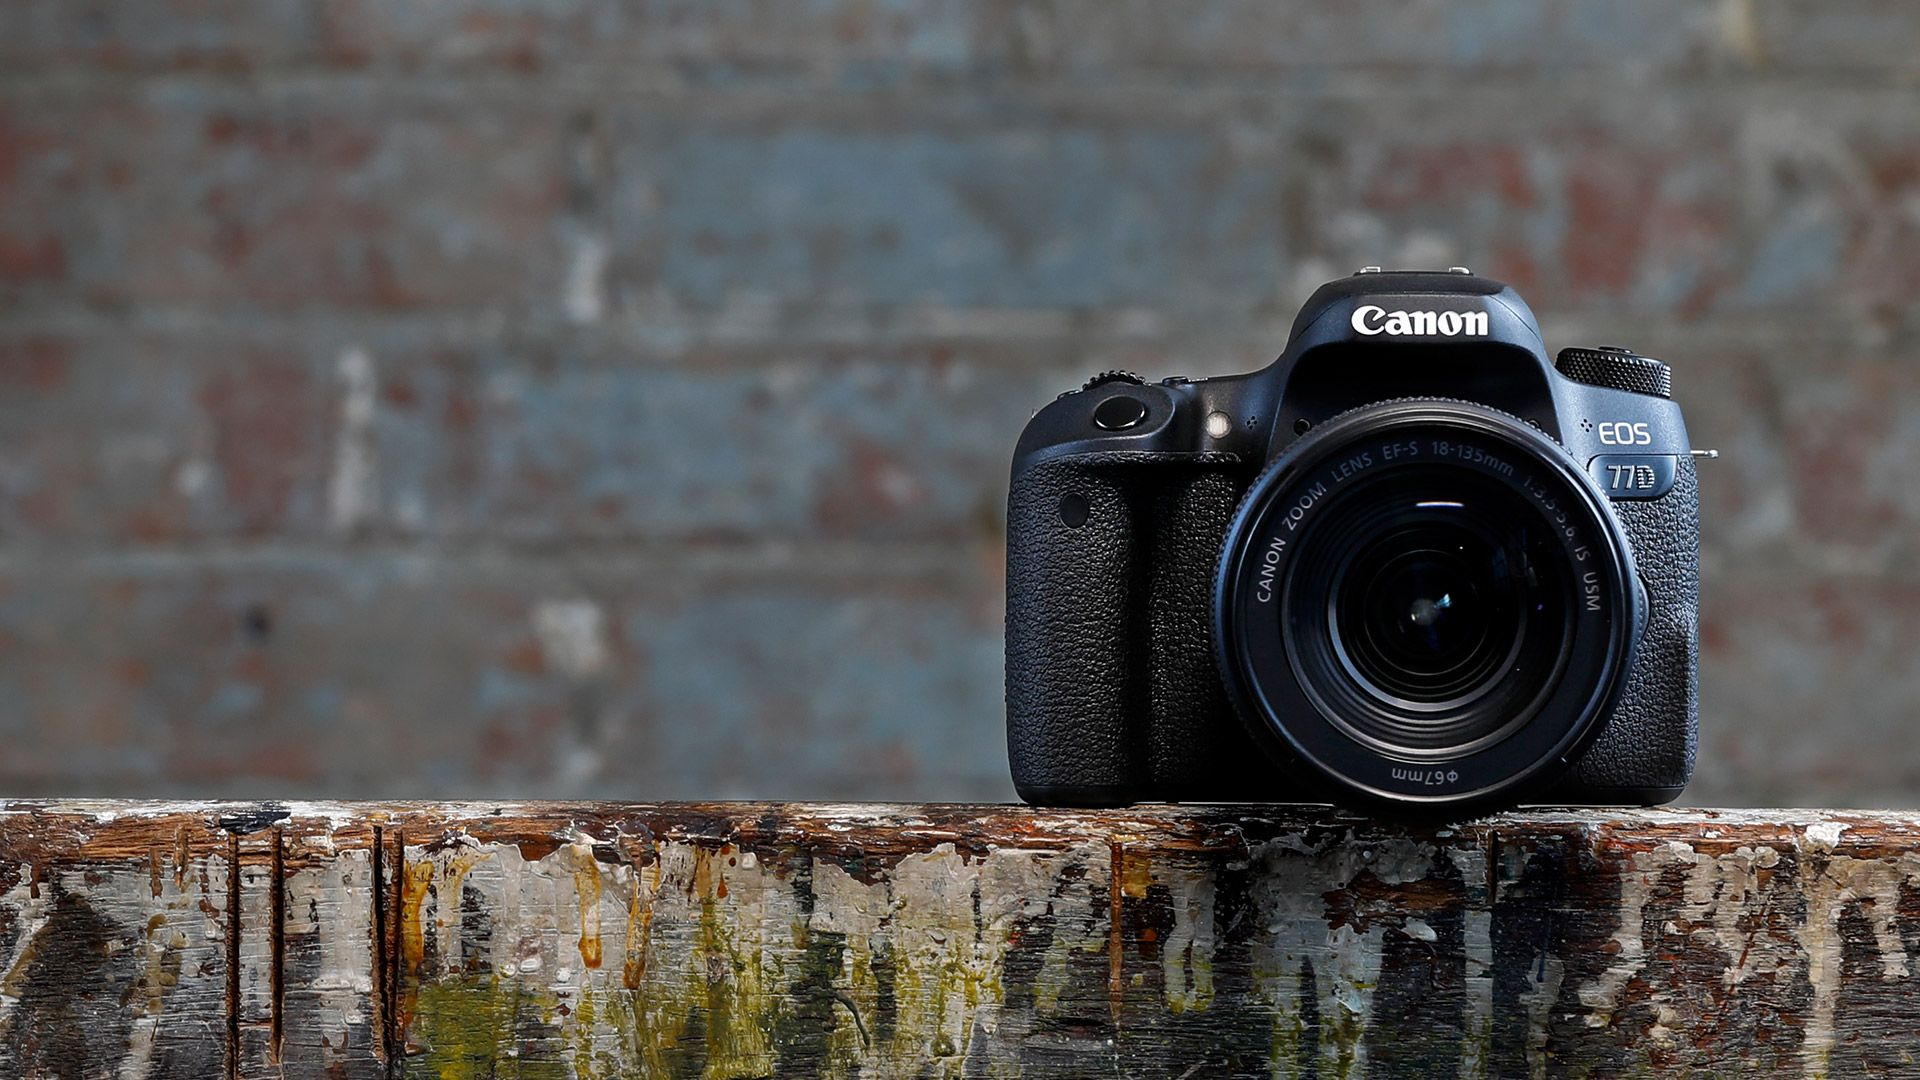 Canon-EOS-77D-Review Canon EOS 77D Review News and Reviews